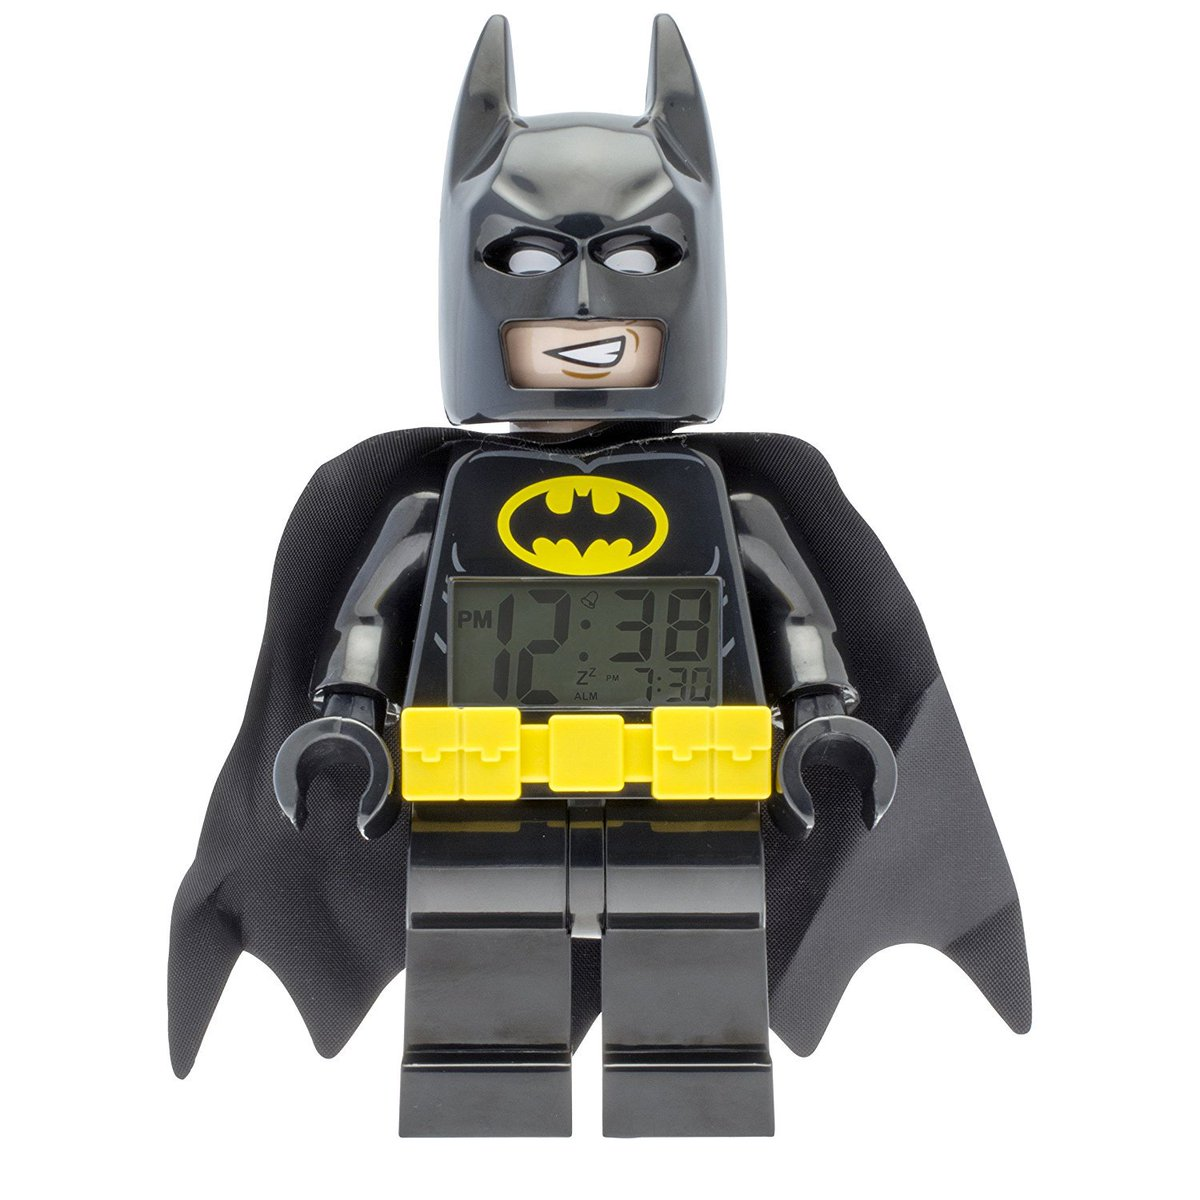 Blast My Deals On Twitter 1999 Lego Batman Mini Figure Alarm